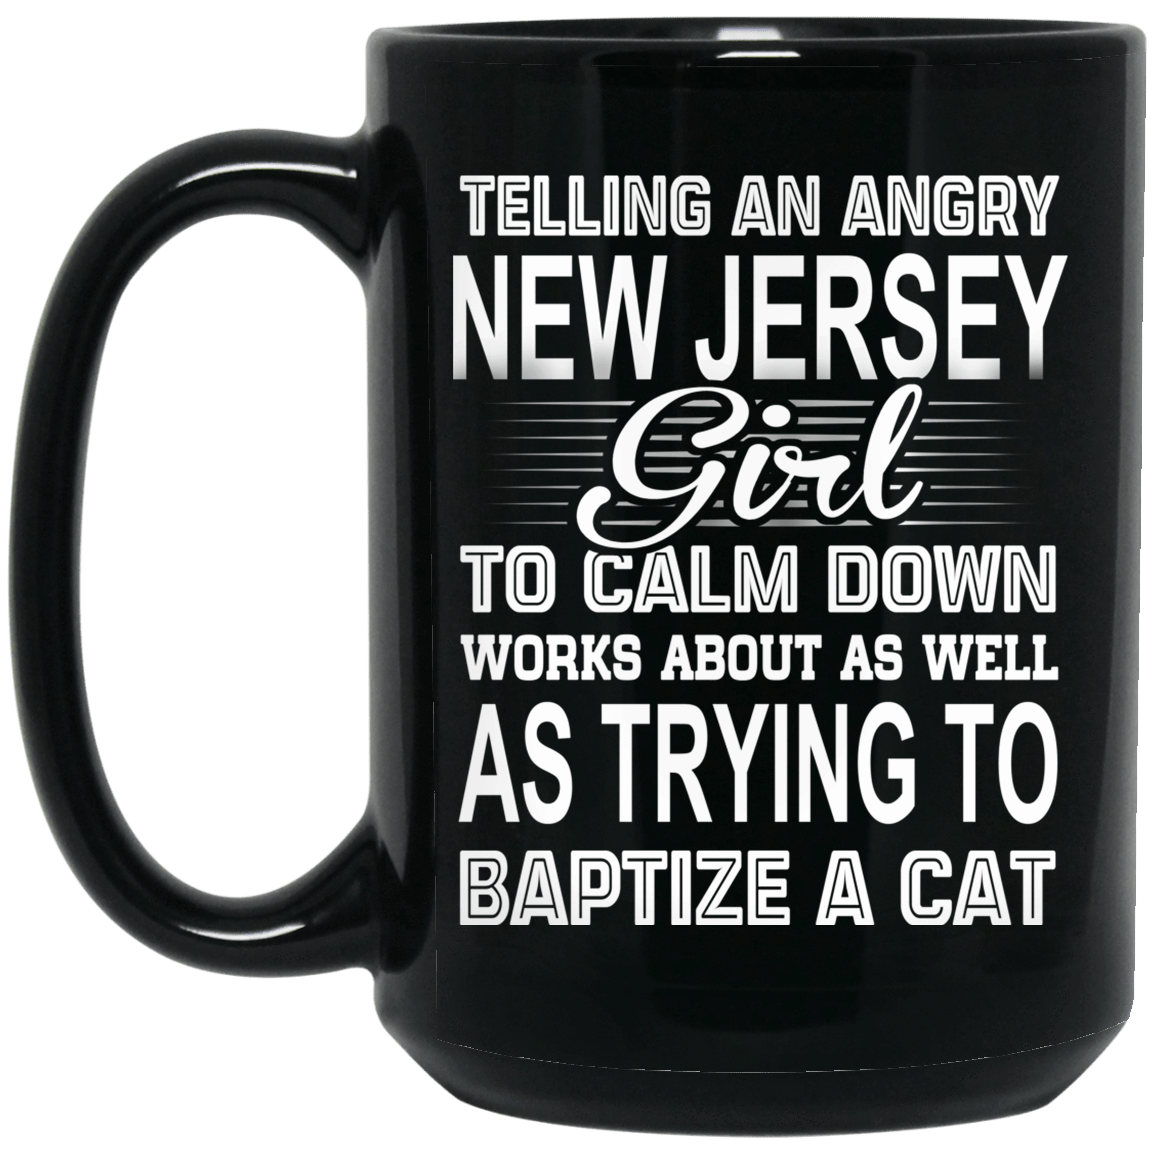 Telling An Angry New Jersey Girl To Calm Down Works About As Well As Trying To Baptize A Cat Mug 1066-10182-76151620-49311 - Tee Ript